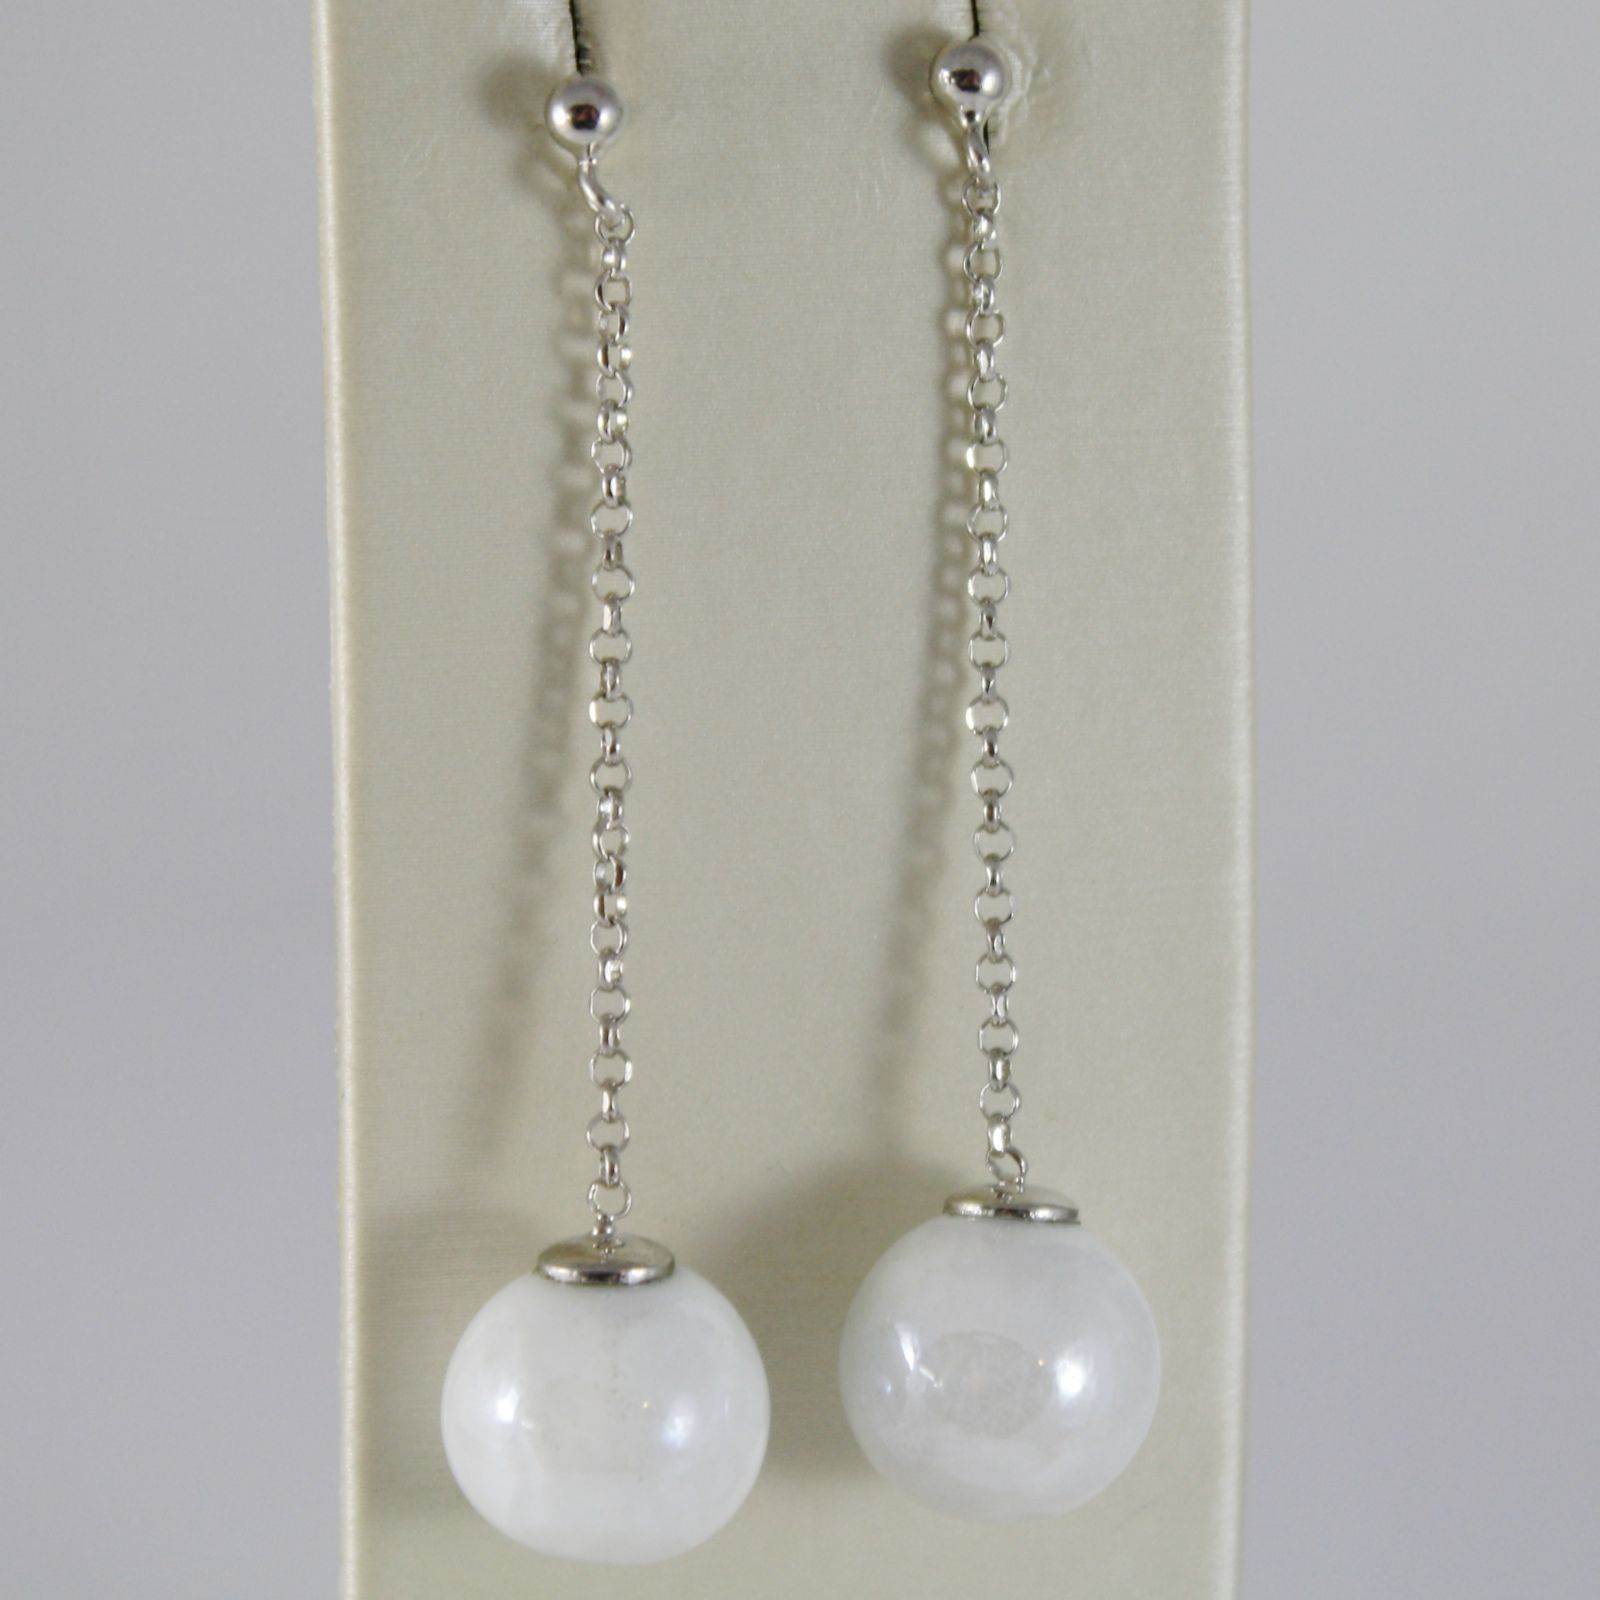 ANTICA MURRINA VENEZIA 12 MM WHITE SPHERE BALLS PENDANT 5.3 CM EARRINGS